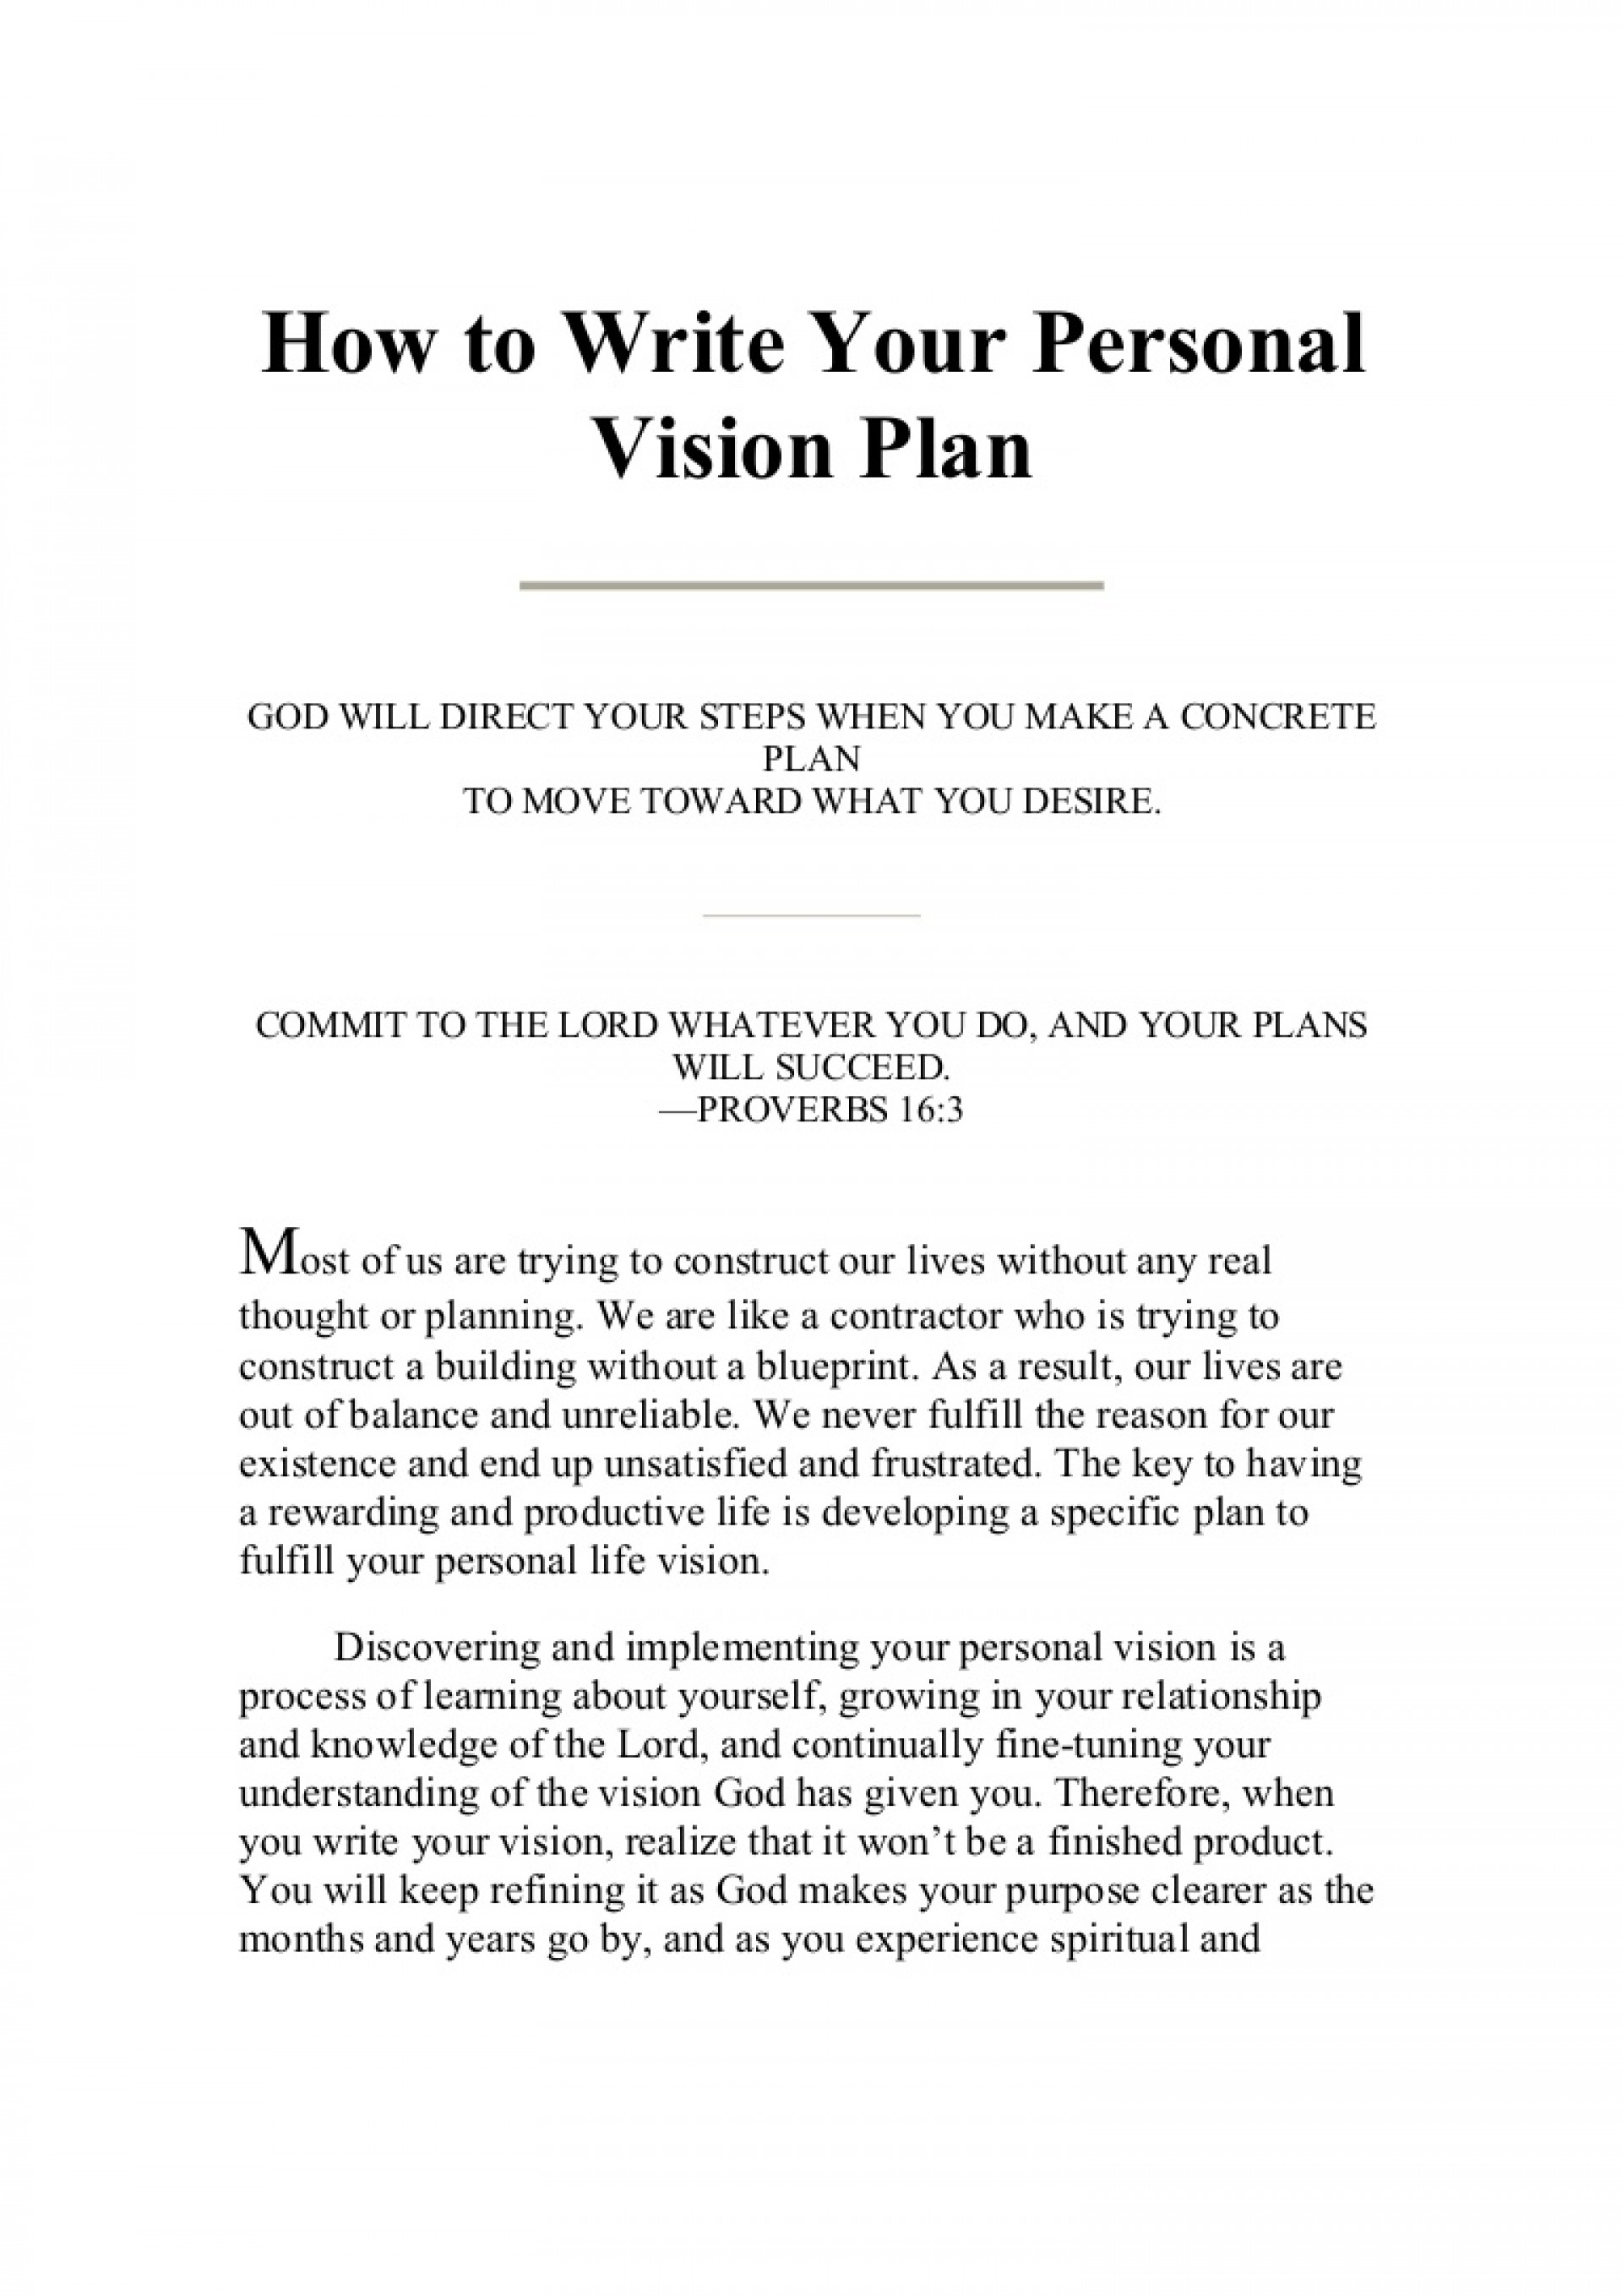 020 Howtowriteyourpersonalvisionplan Phpapp01 Thumbnail 4cb5cu003d1248839068 Essay Example Career Fantastic Goals Business Examples Scholarship Pdf 1920